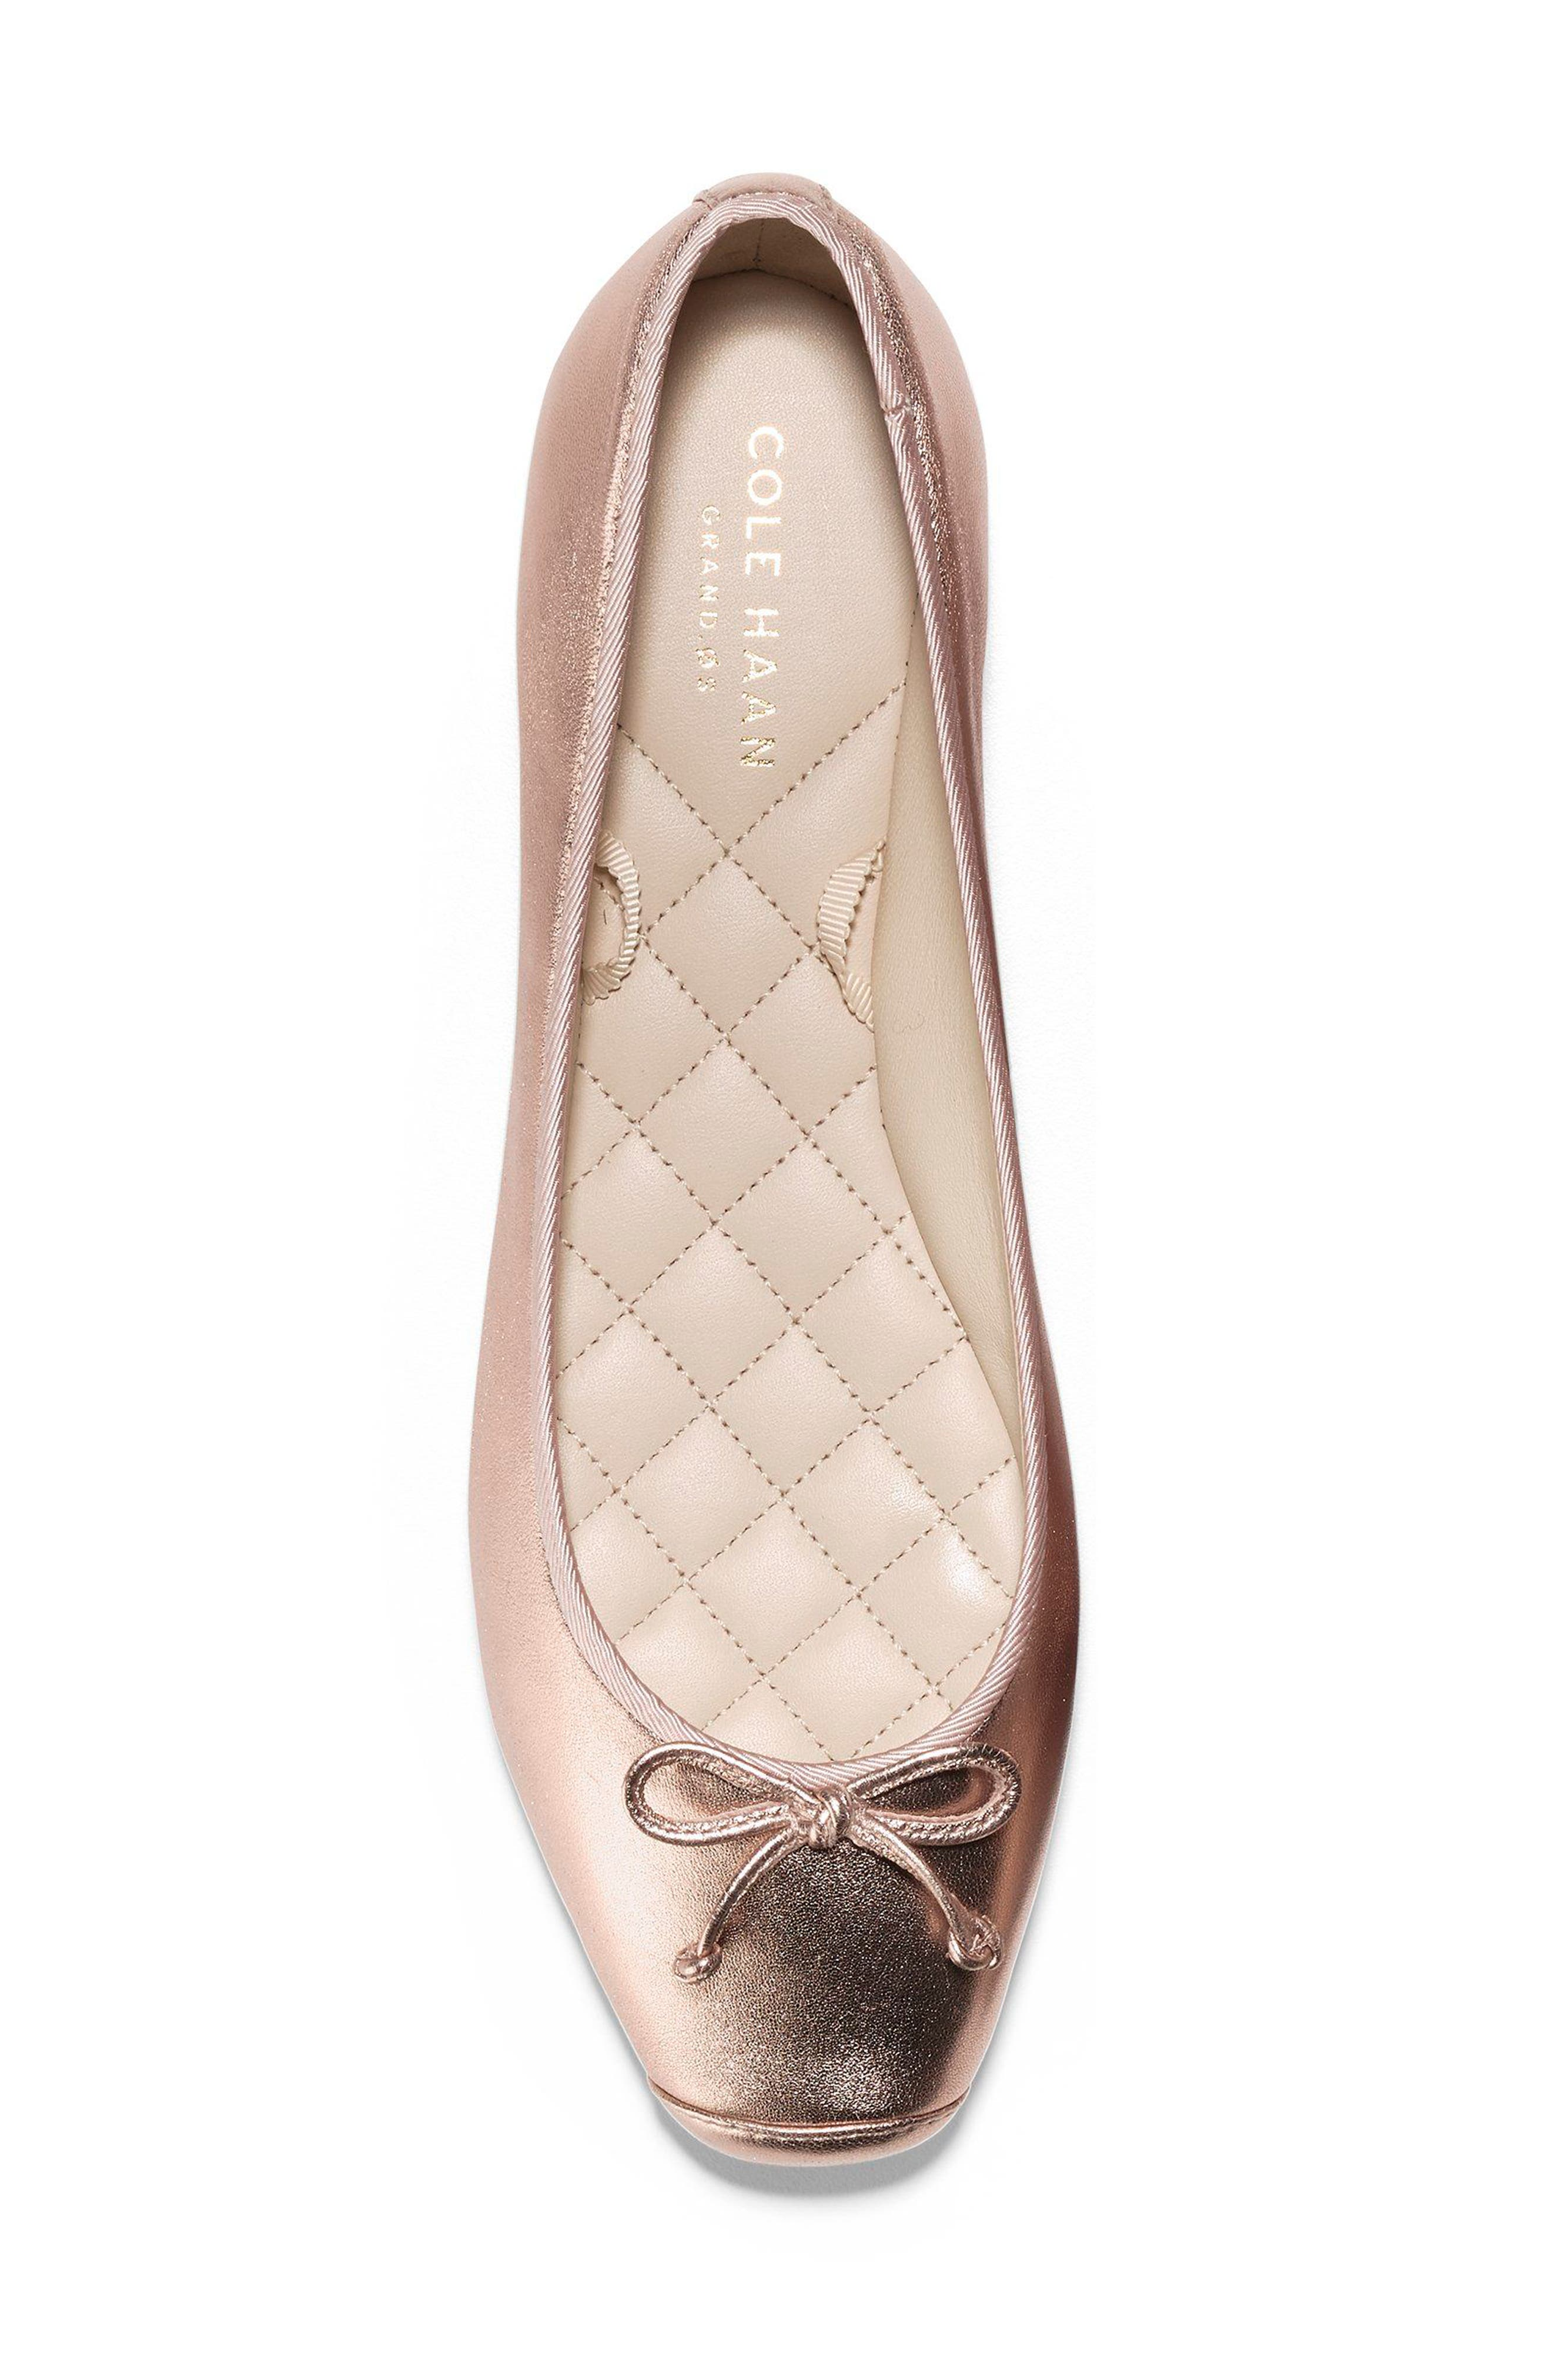 Downtown Ankle Wrap Ballet Flat,                             Alternate thumbnail 5, color,                             Rose Gold Leather